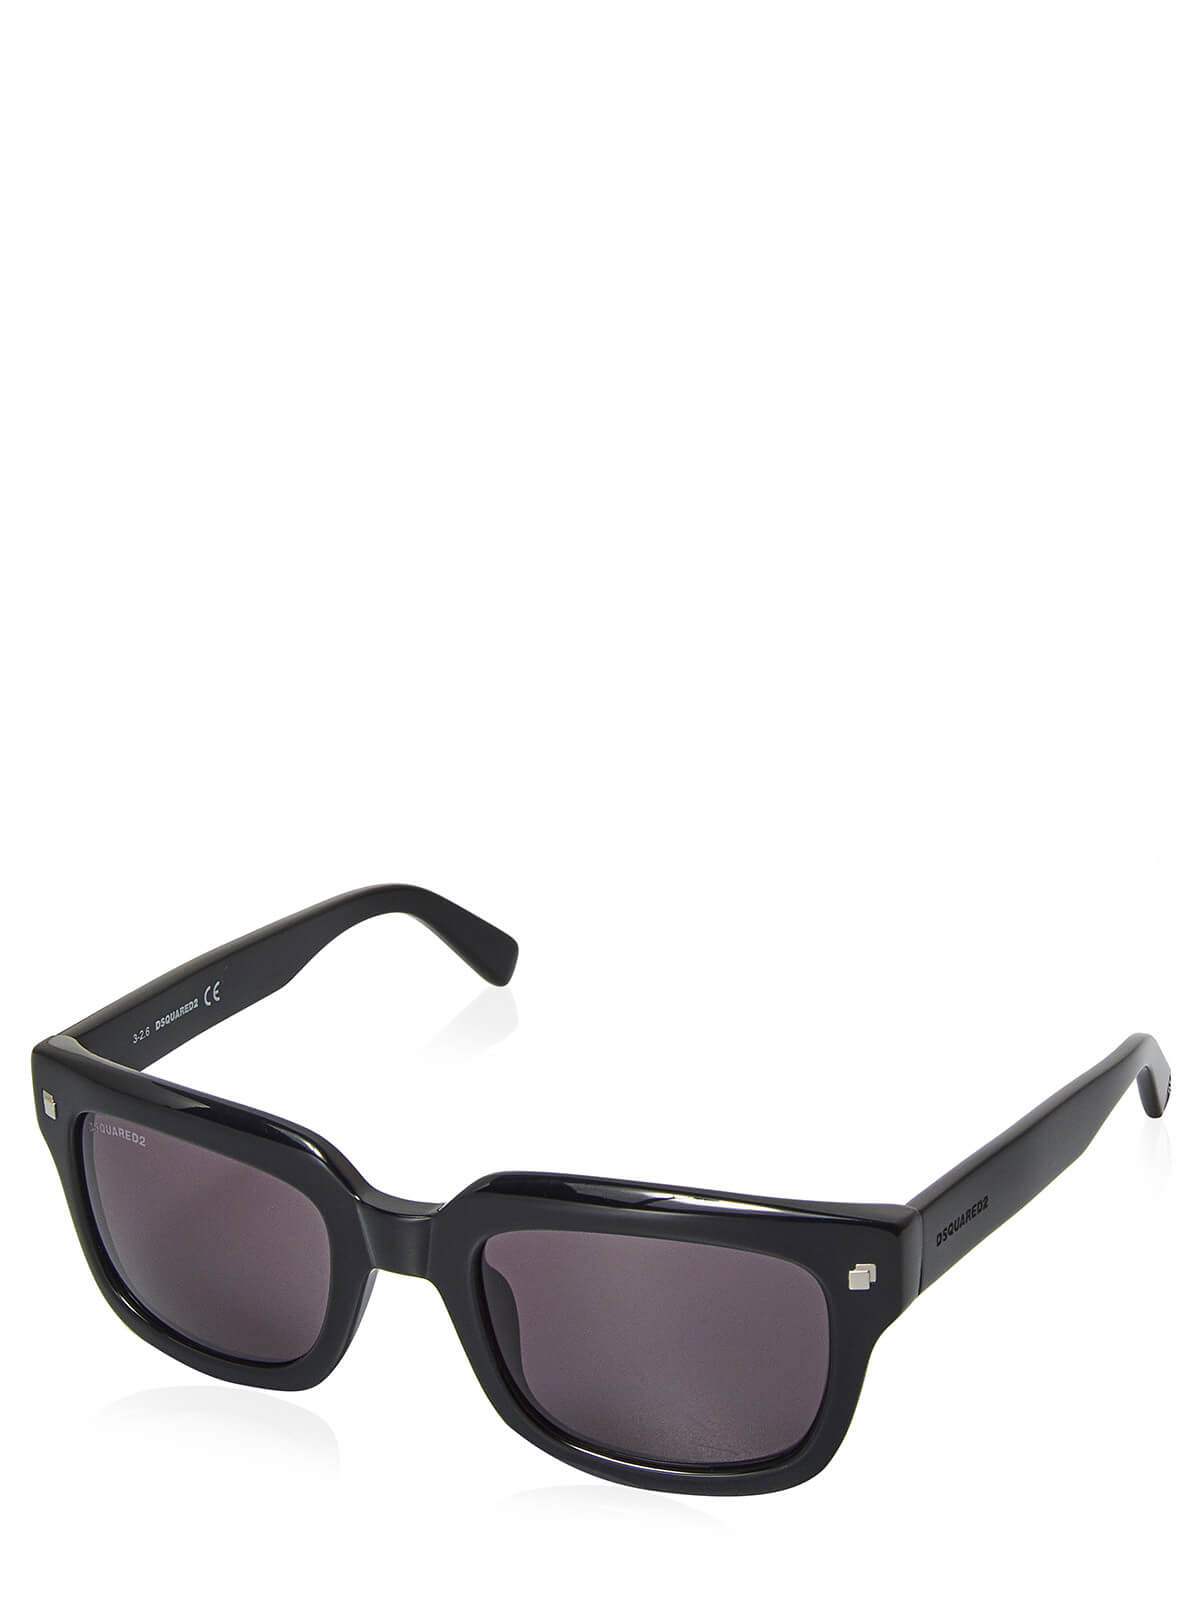 b82b08b4b7dbbb Dsquared sunglasses